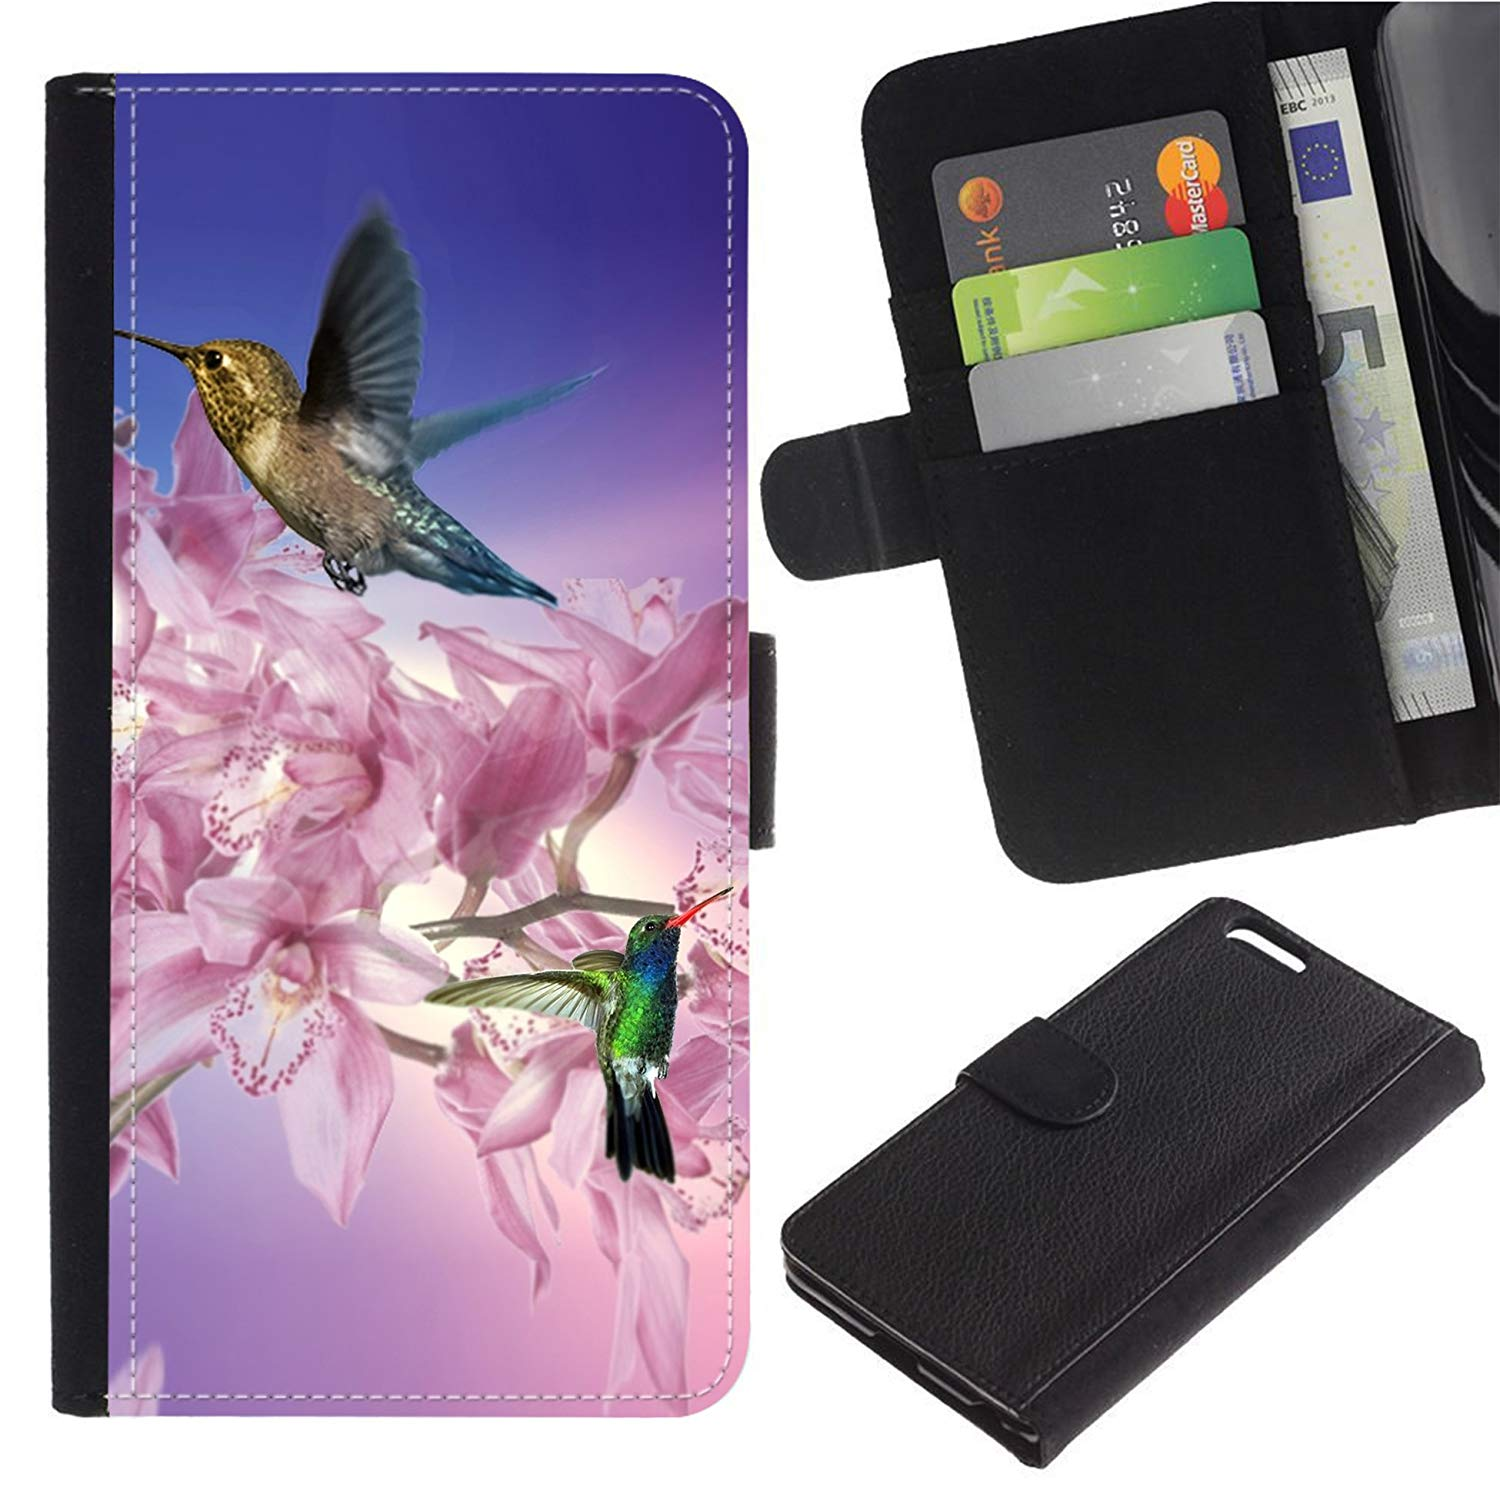 [White Pink Orchid Purple And Hummingbirds] For Moto E5 Play/Moto E5 Cruise, Flip Leather Wallet Holsters Pouch Skin Case